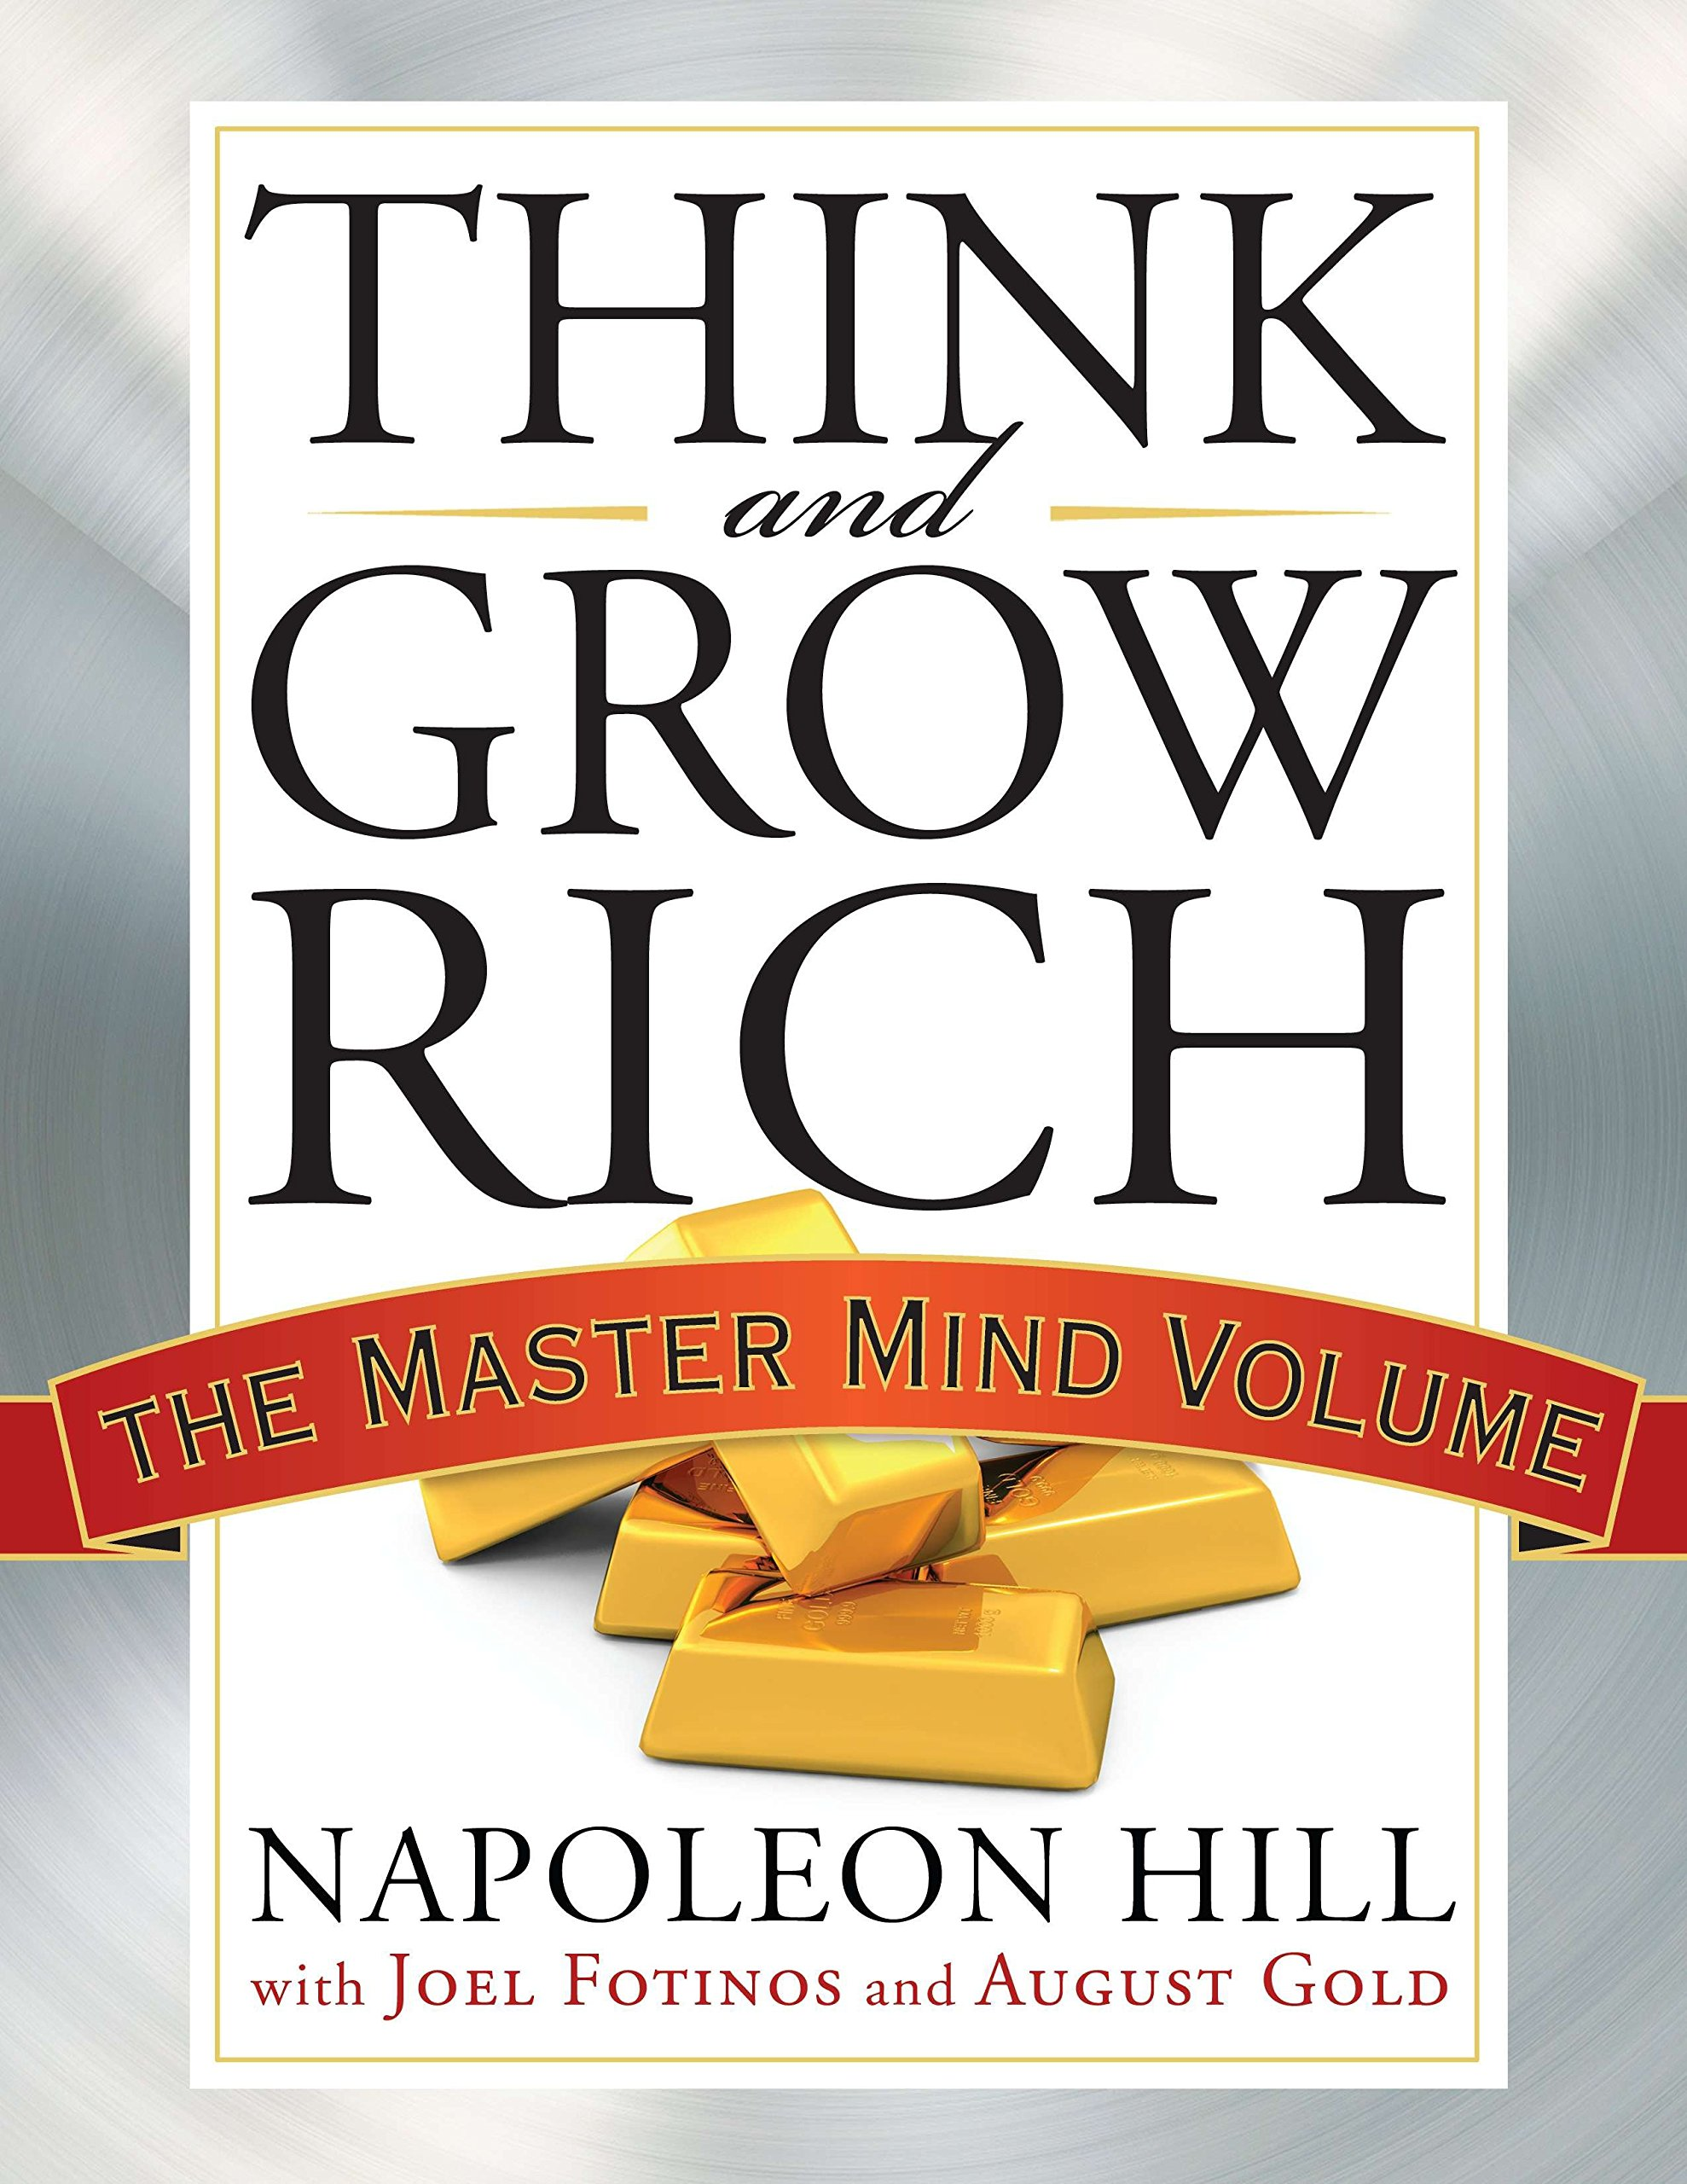 Think and Grow Rich: The Master Mind Volume (Think and Grow Rich Series):  Napoleon Hill, Joel Fotinos, August Gold: 9781585428960: Amazon.com: Books